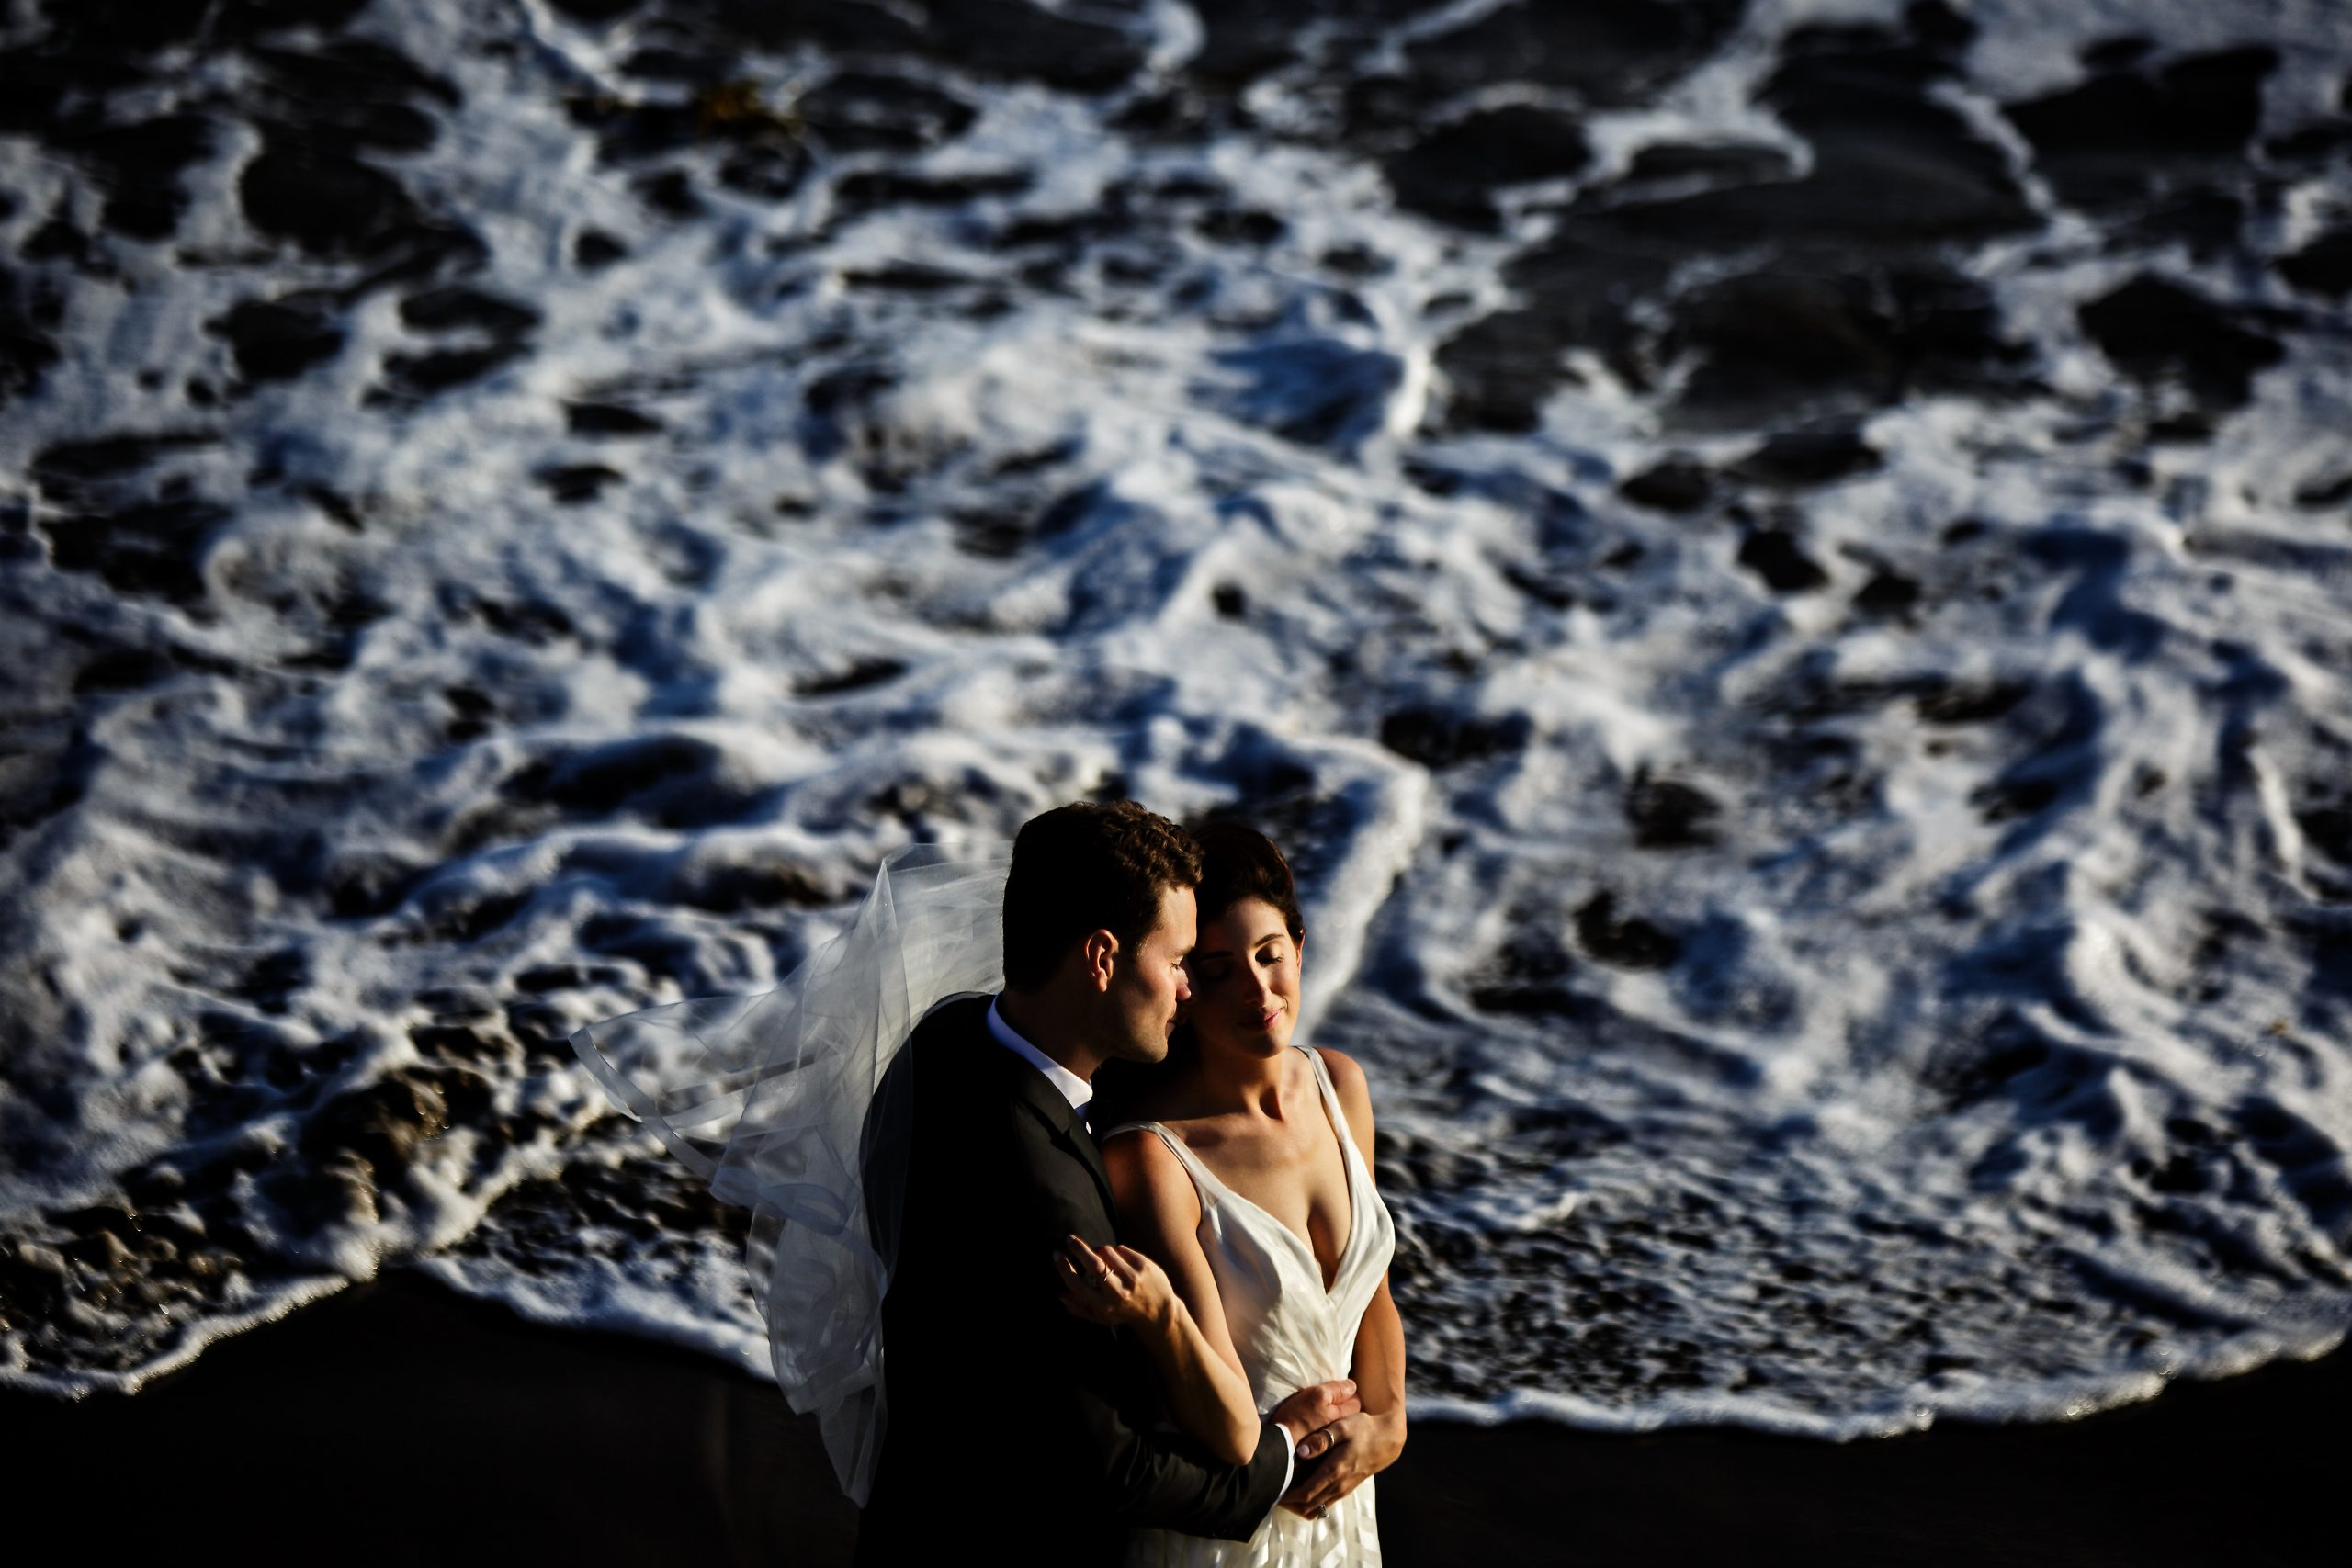 The veil flies as bride and groom embrace in front of ocean waves